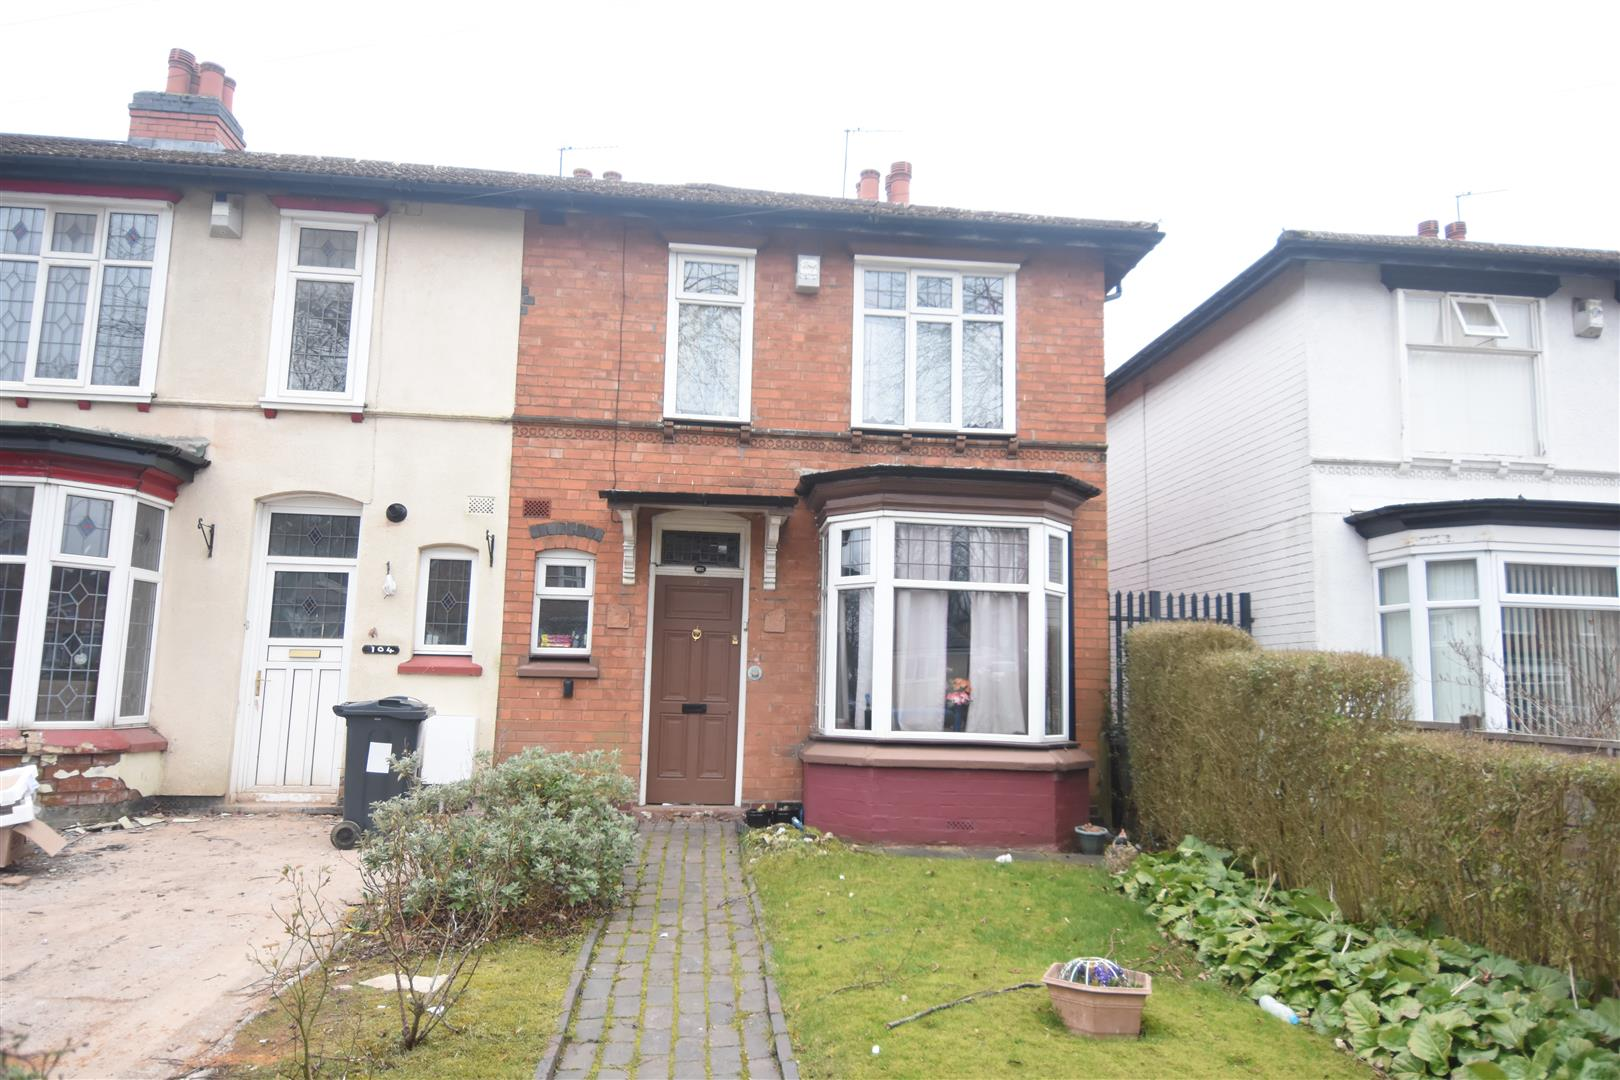 3 bed  for sale in Sarehole Road, Hall Green, Birmingham, B28